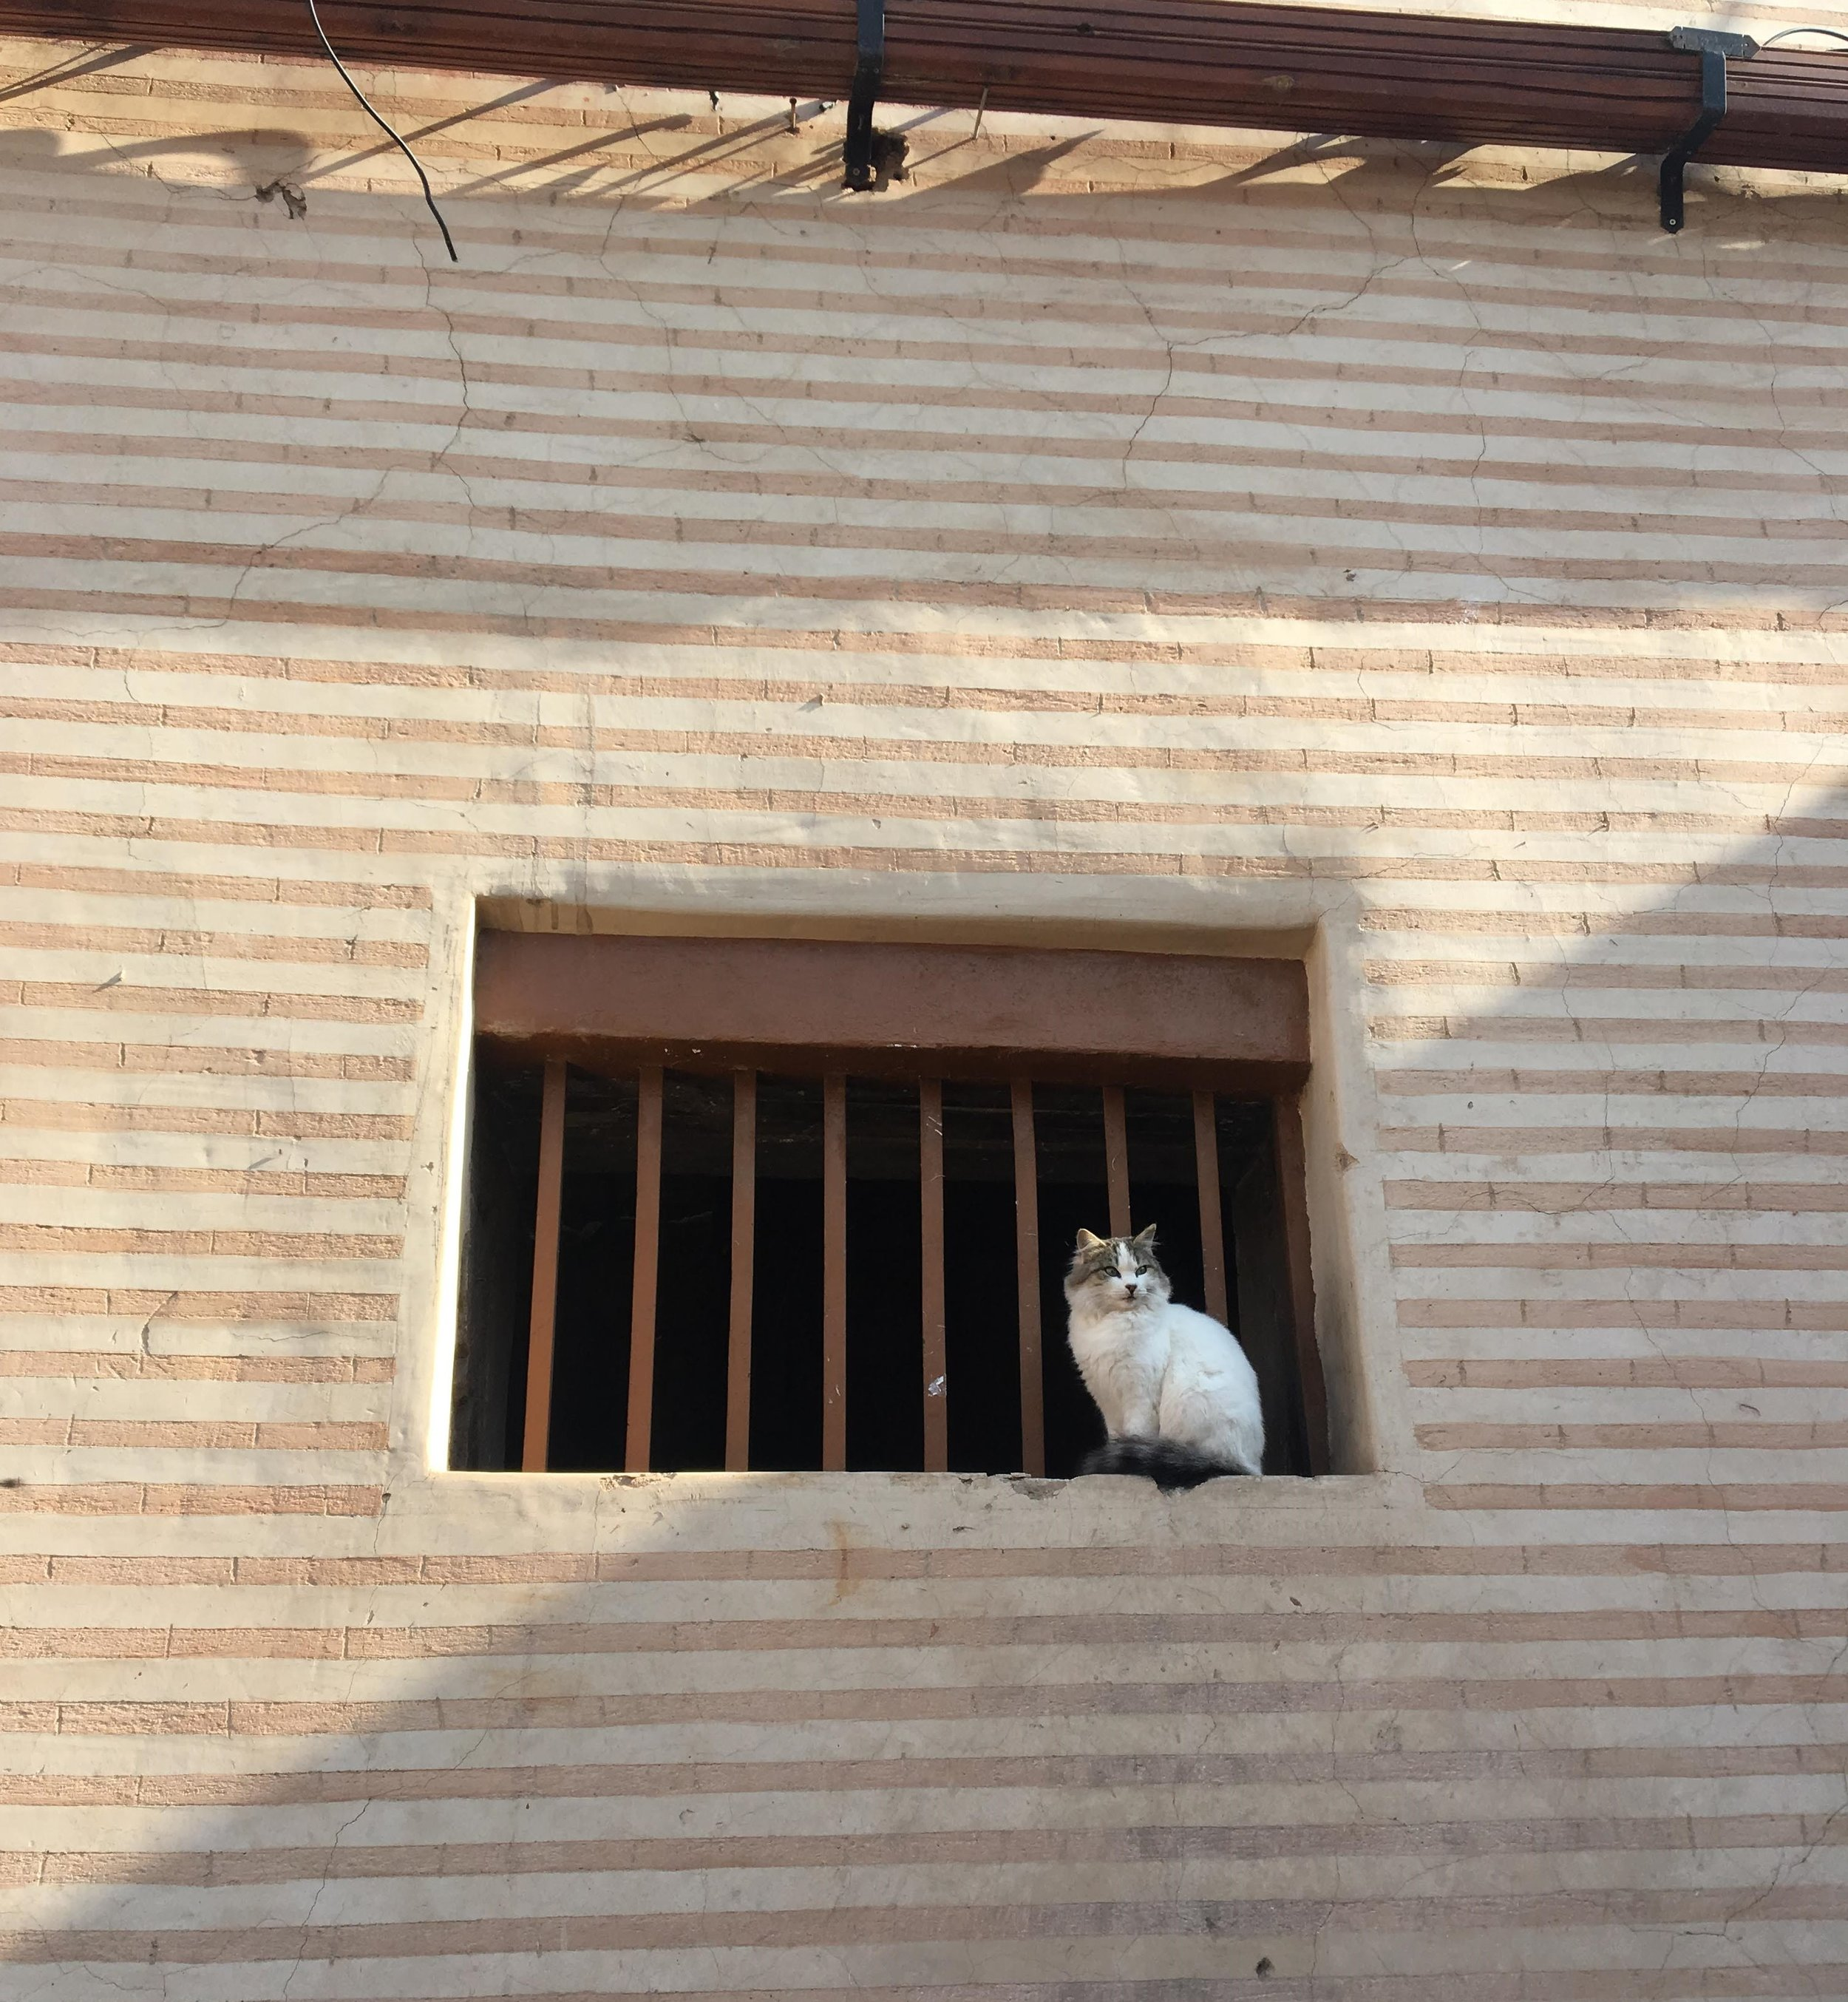 Surveying the crowded streets of Agadir, this queen cat reigns over her kingdom. Too far away to give proper attention, she watches us act as her paparazzi, and we are happy to comply. Photo credit: Fisher, 2019